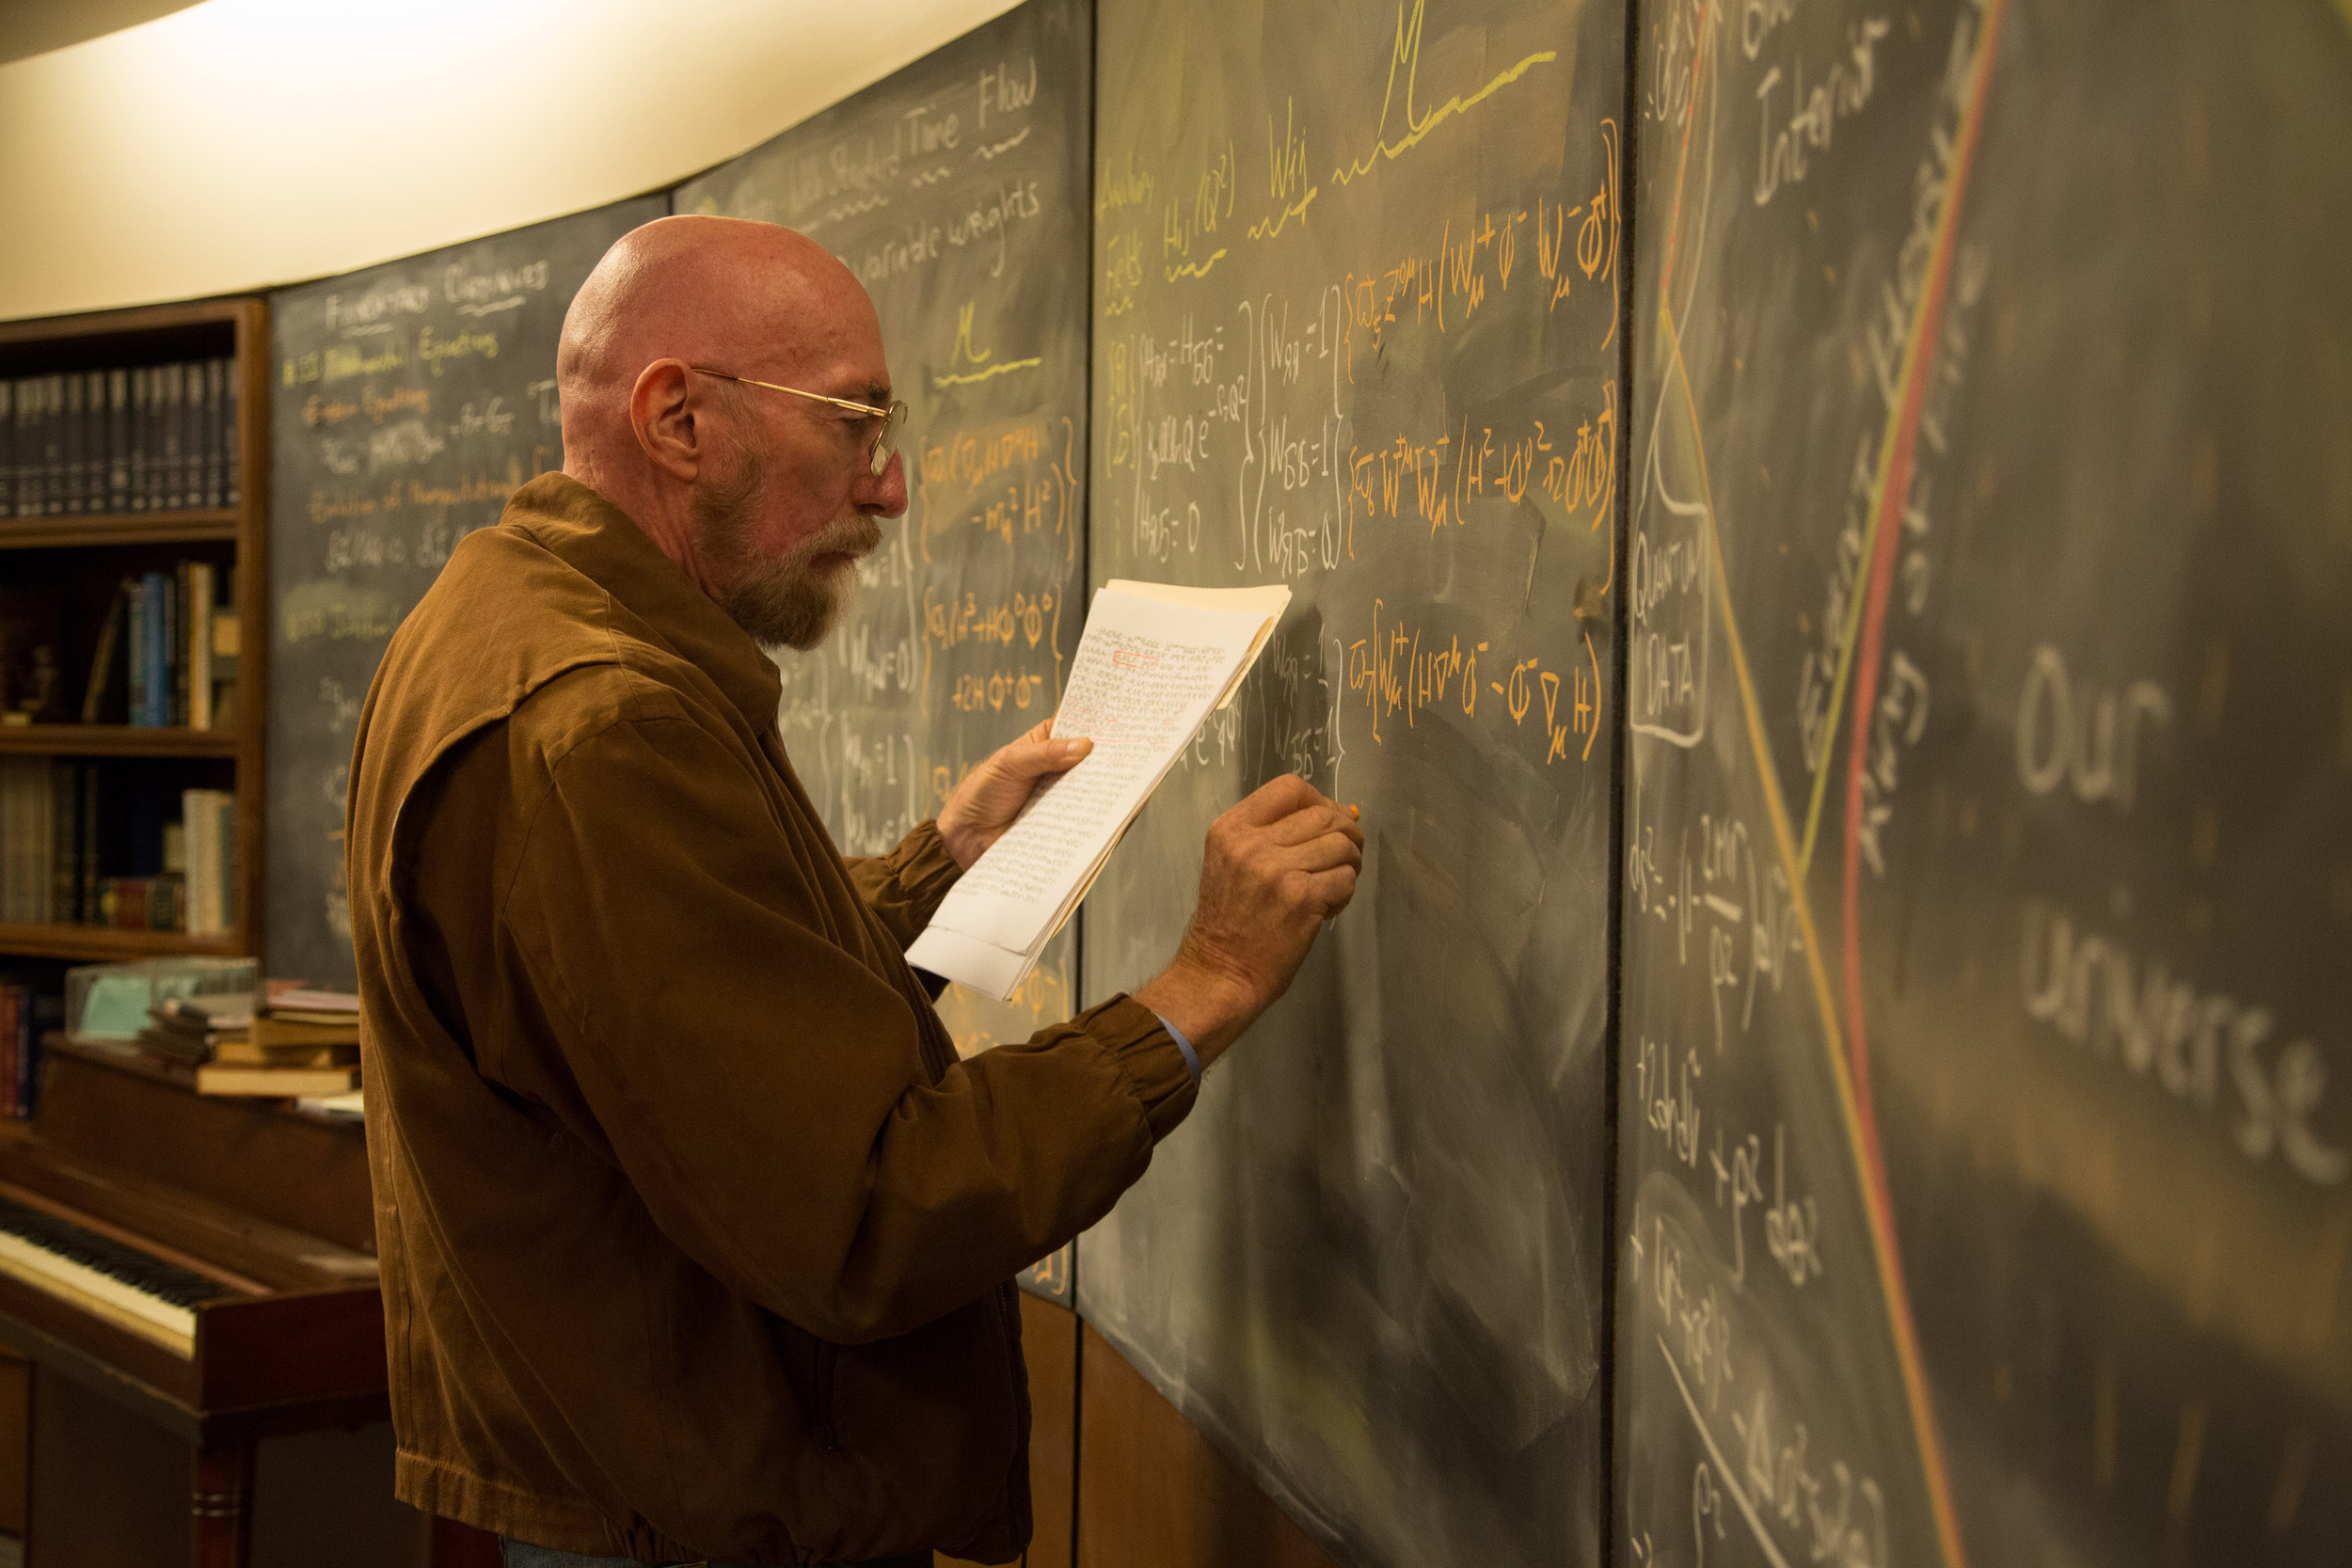 Theoretical physicist Kip Thorne,  Interstellar's  progenitor (with Lynda Obst) and science adviser.